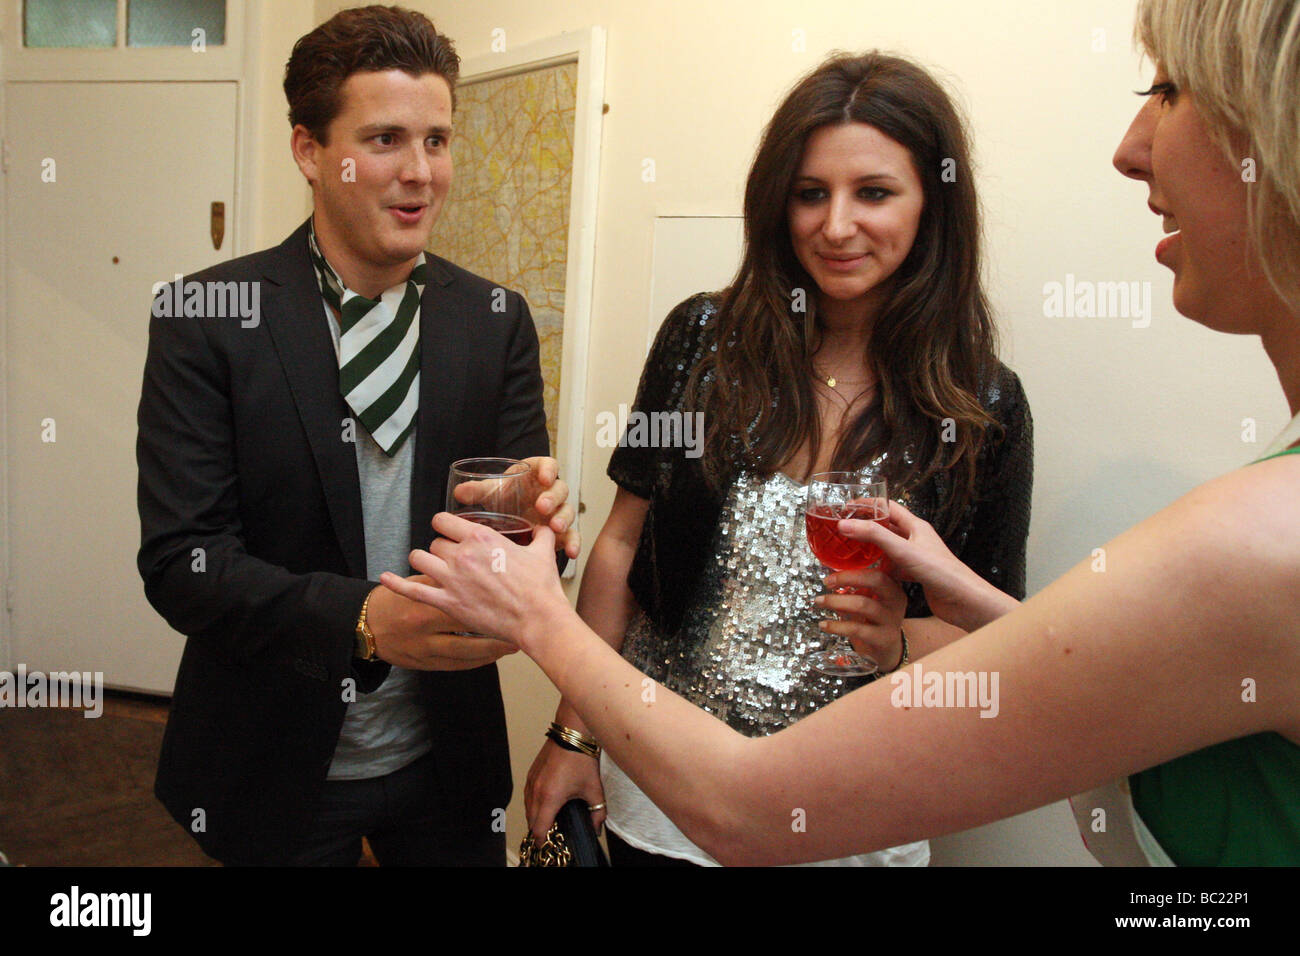 Guests are presented with drinks at the entrance to a party (a pop up dinner). - Stock Image